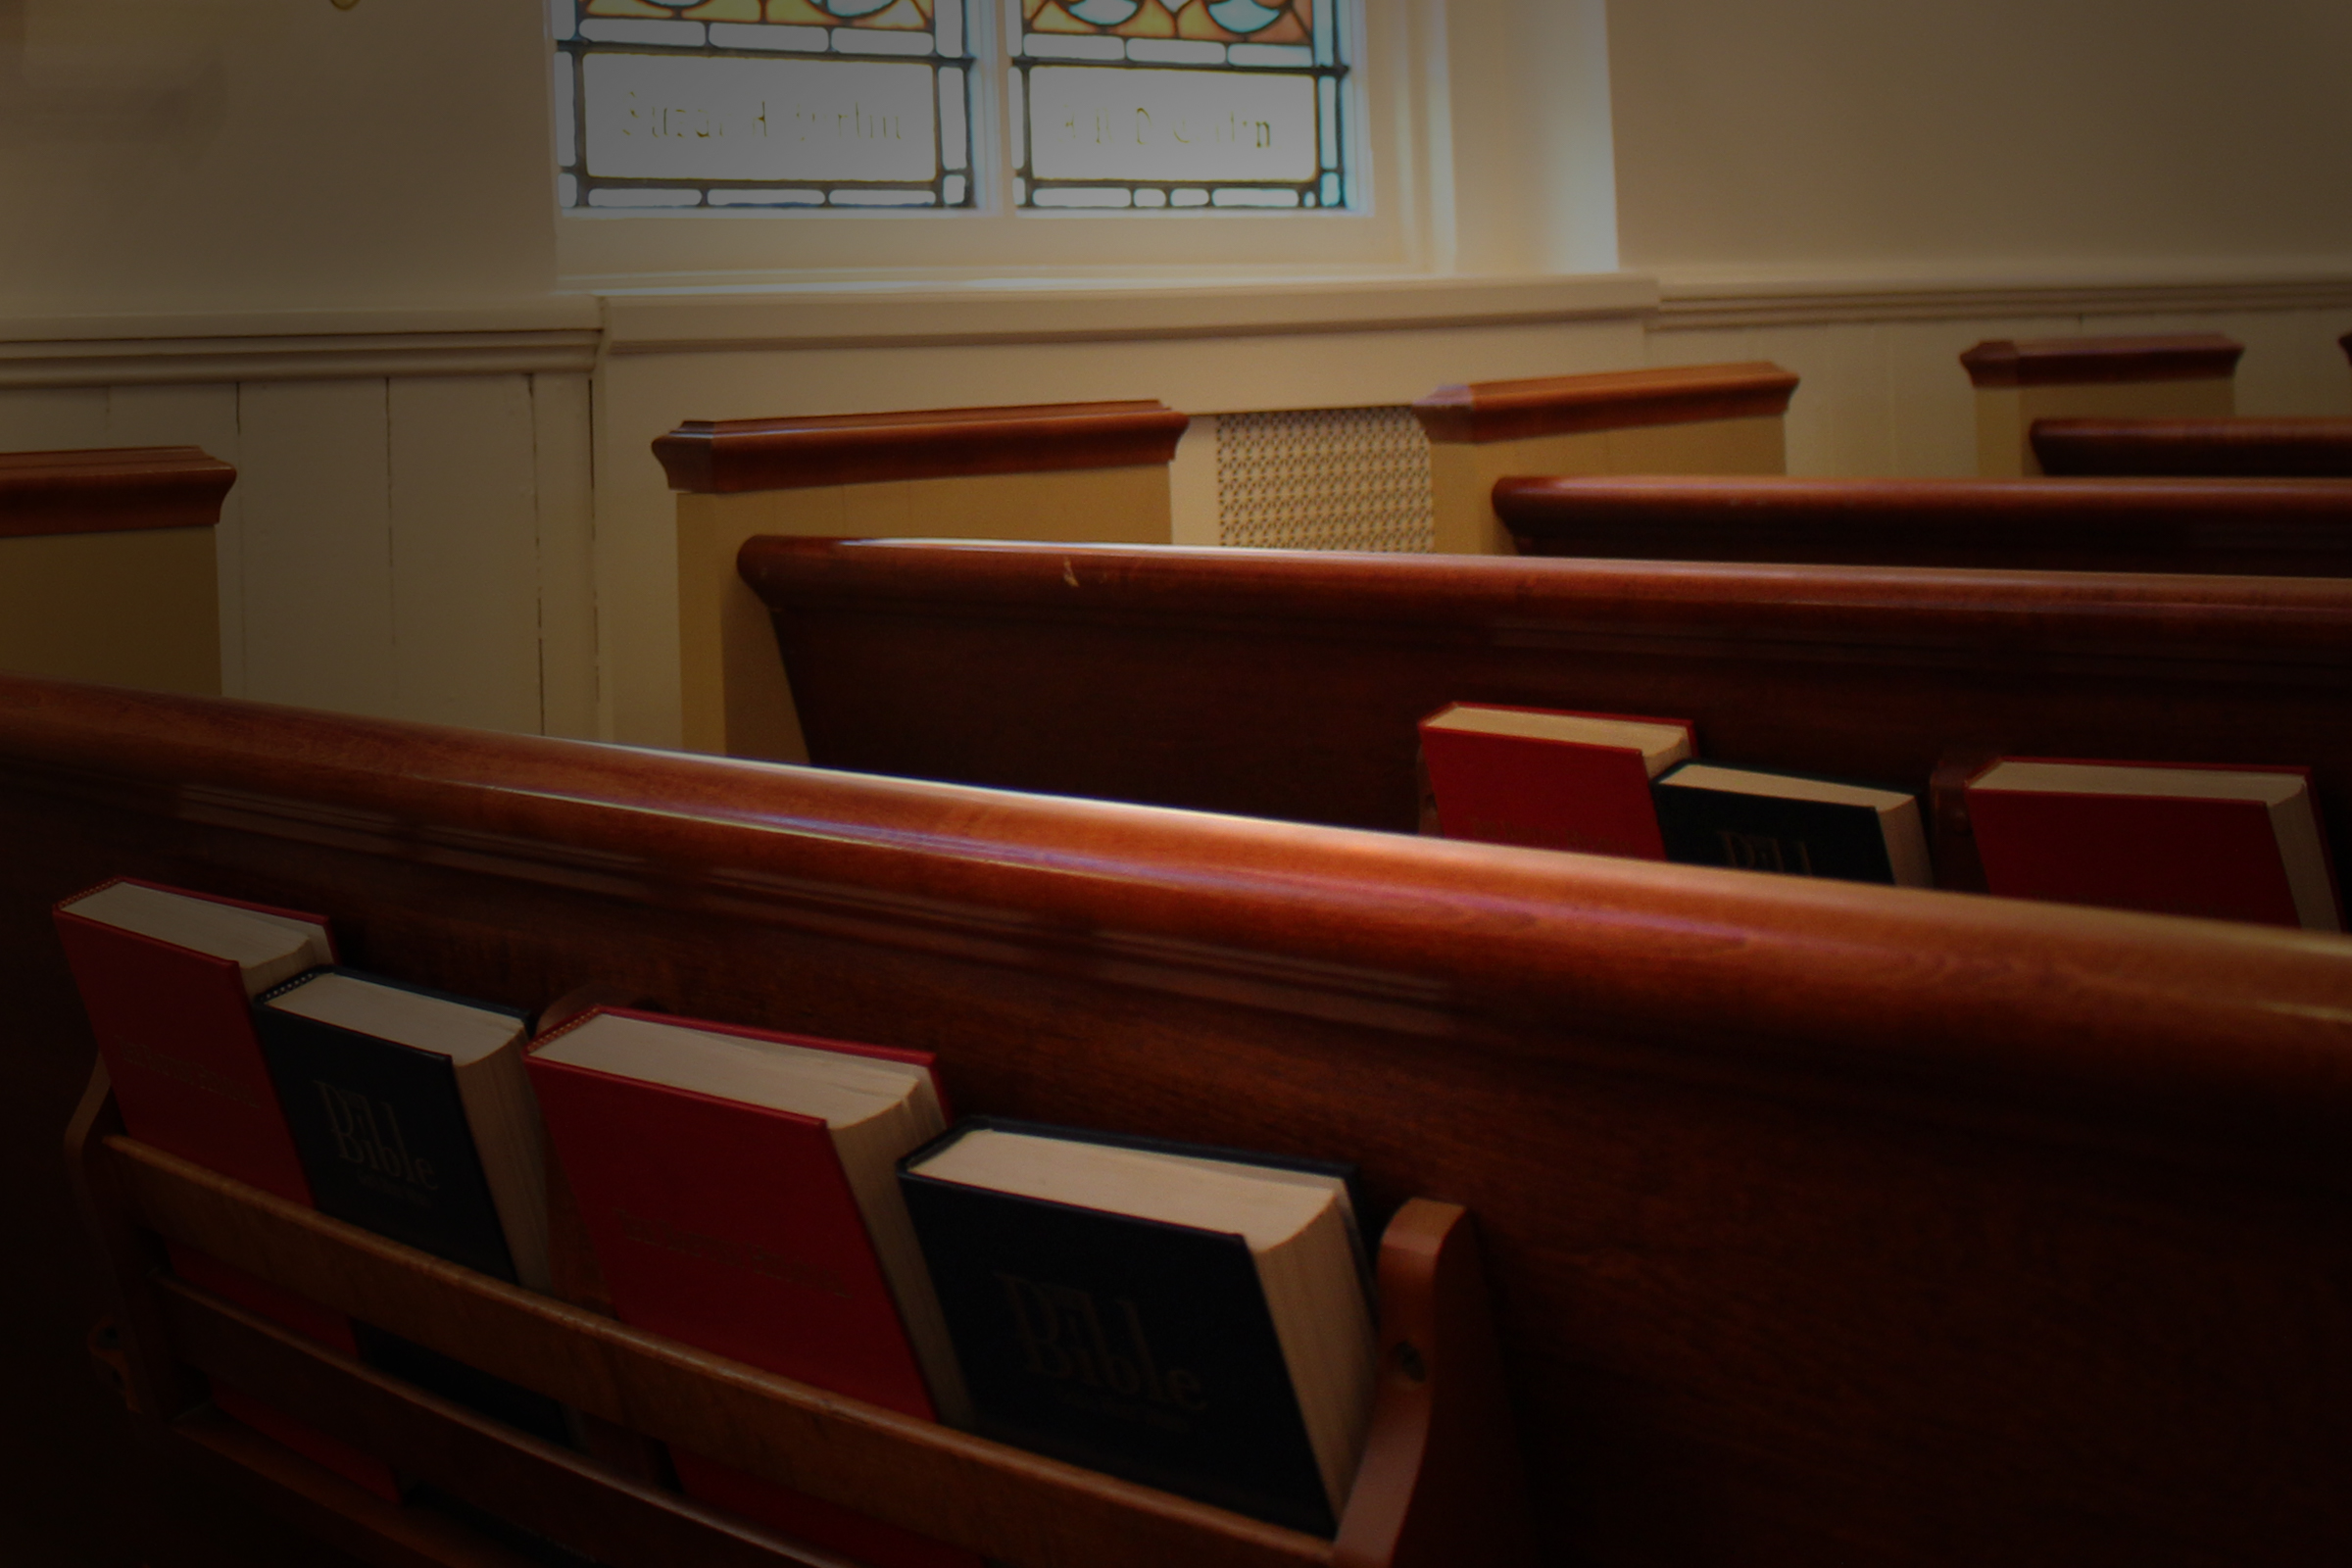 image of pews inside a church